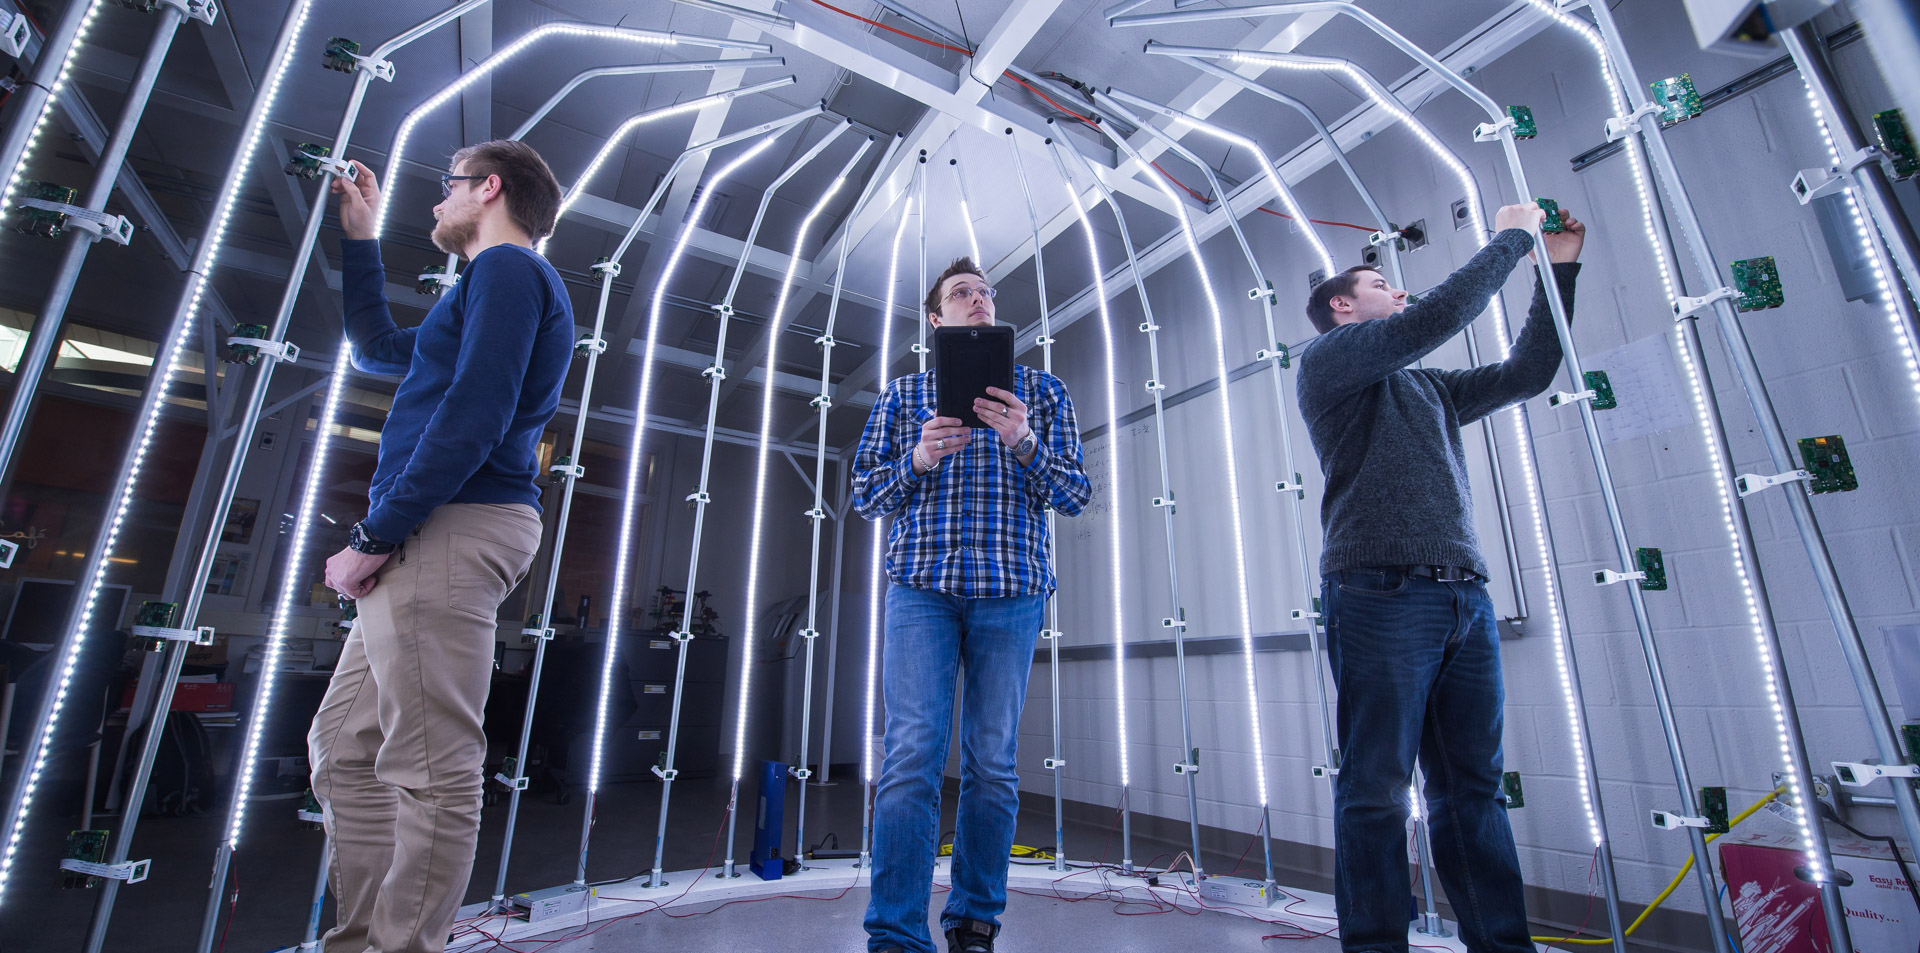 Students inside a brightly lit camera cage in Behrend's Innovation Commons